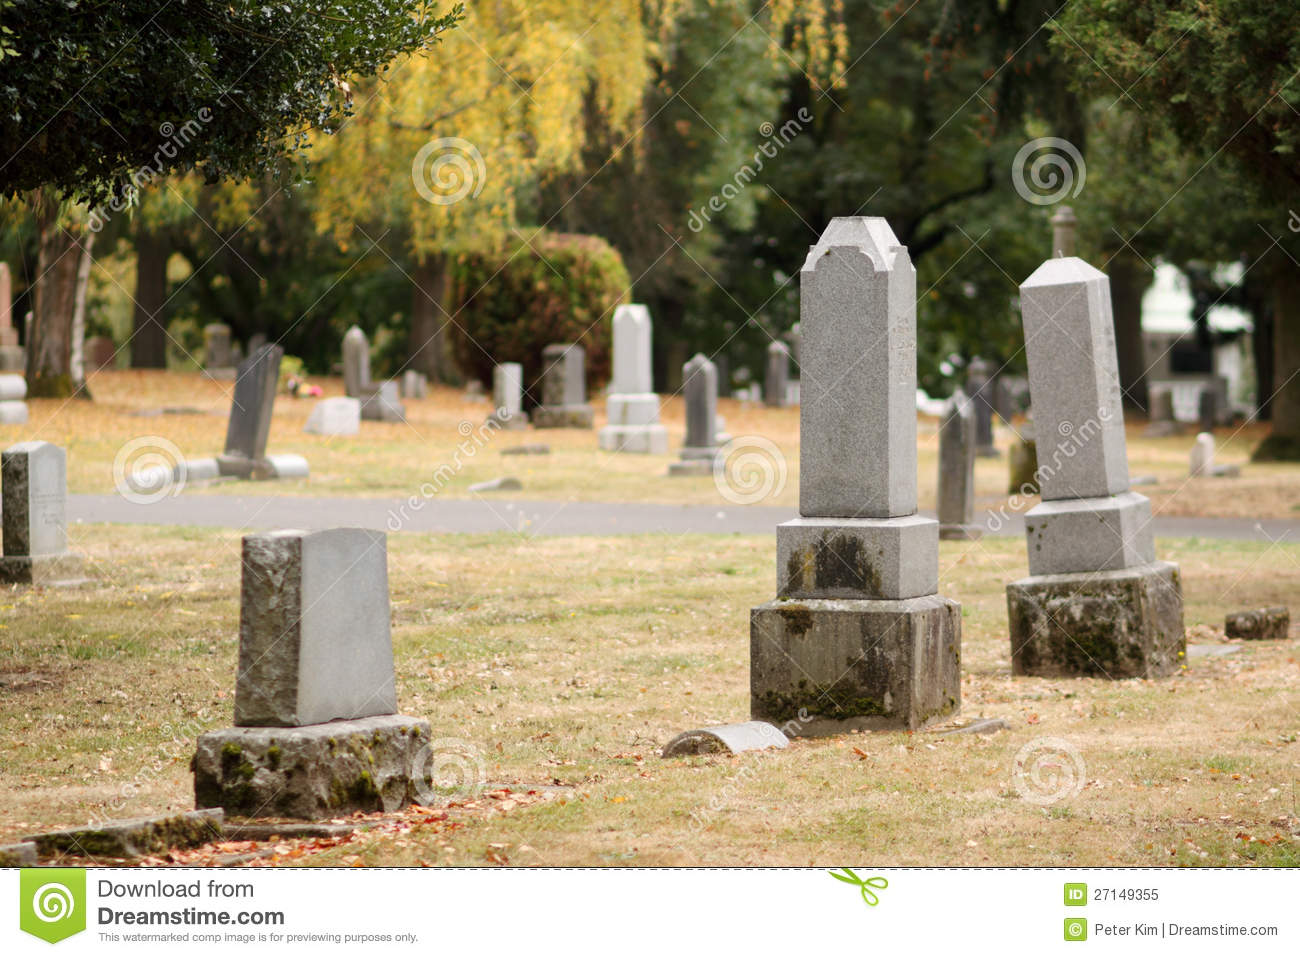 Royalty Free Stock Photo: Burial site: dreamstime.com/royalty-free-stock-photo-burial-site-image27149355